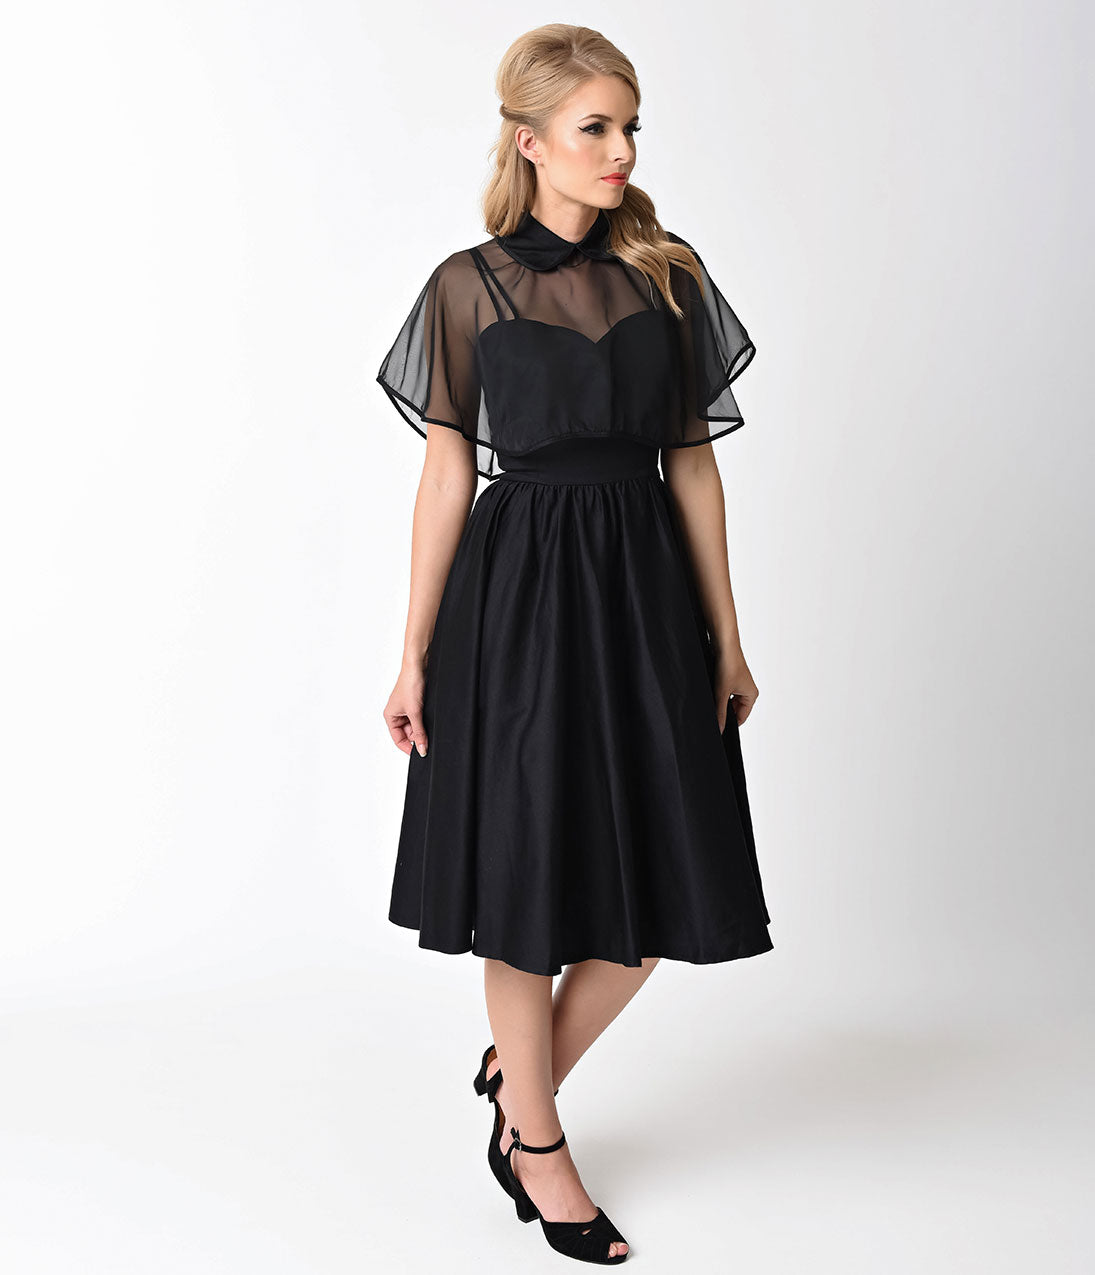 1940s Evening, Prom, Party, Cocktail Dresses & Ball Gowns Unique Vintage 1940s Style Black Brushed Cotton Luna Swing Dress  Mesh Capelet $89.00 AT vintagedancer.com